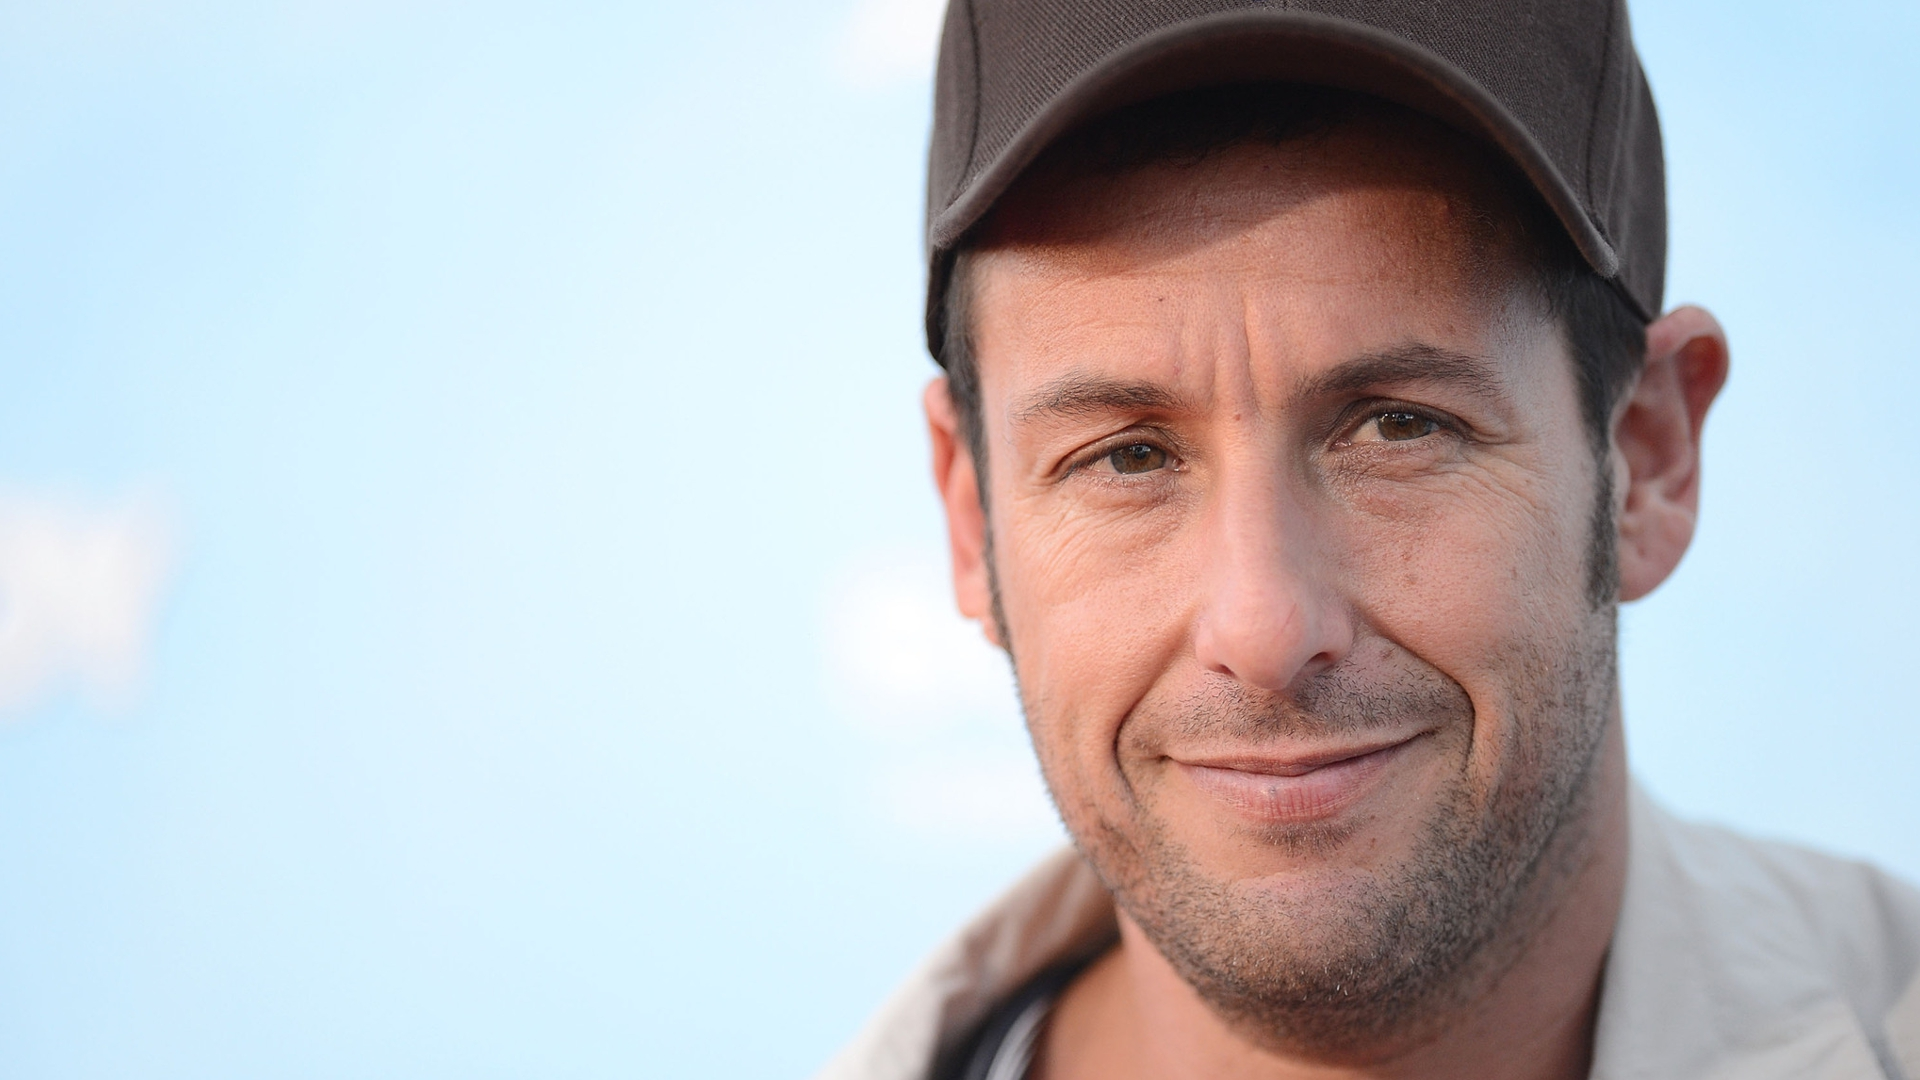 sandler-adam-518b79c27b8be